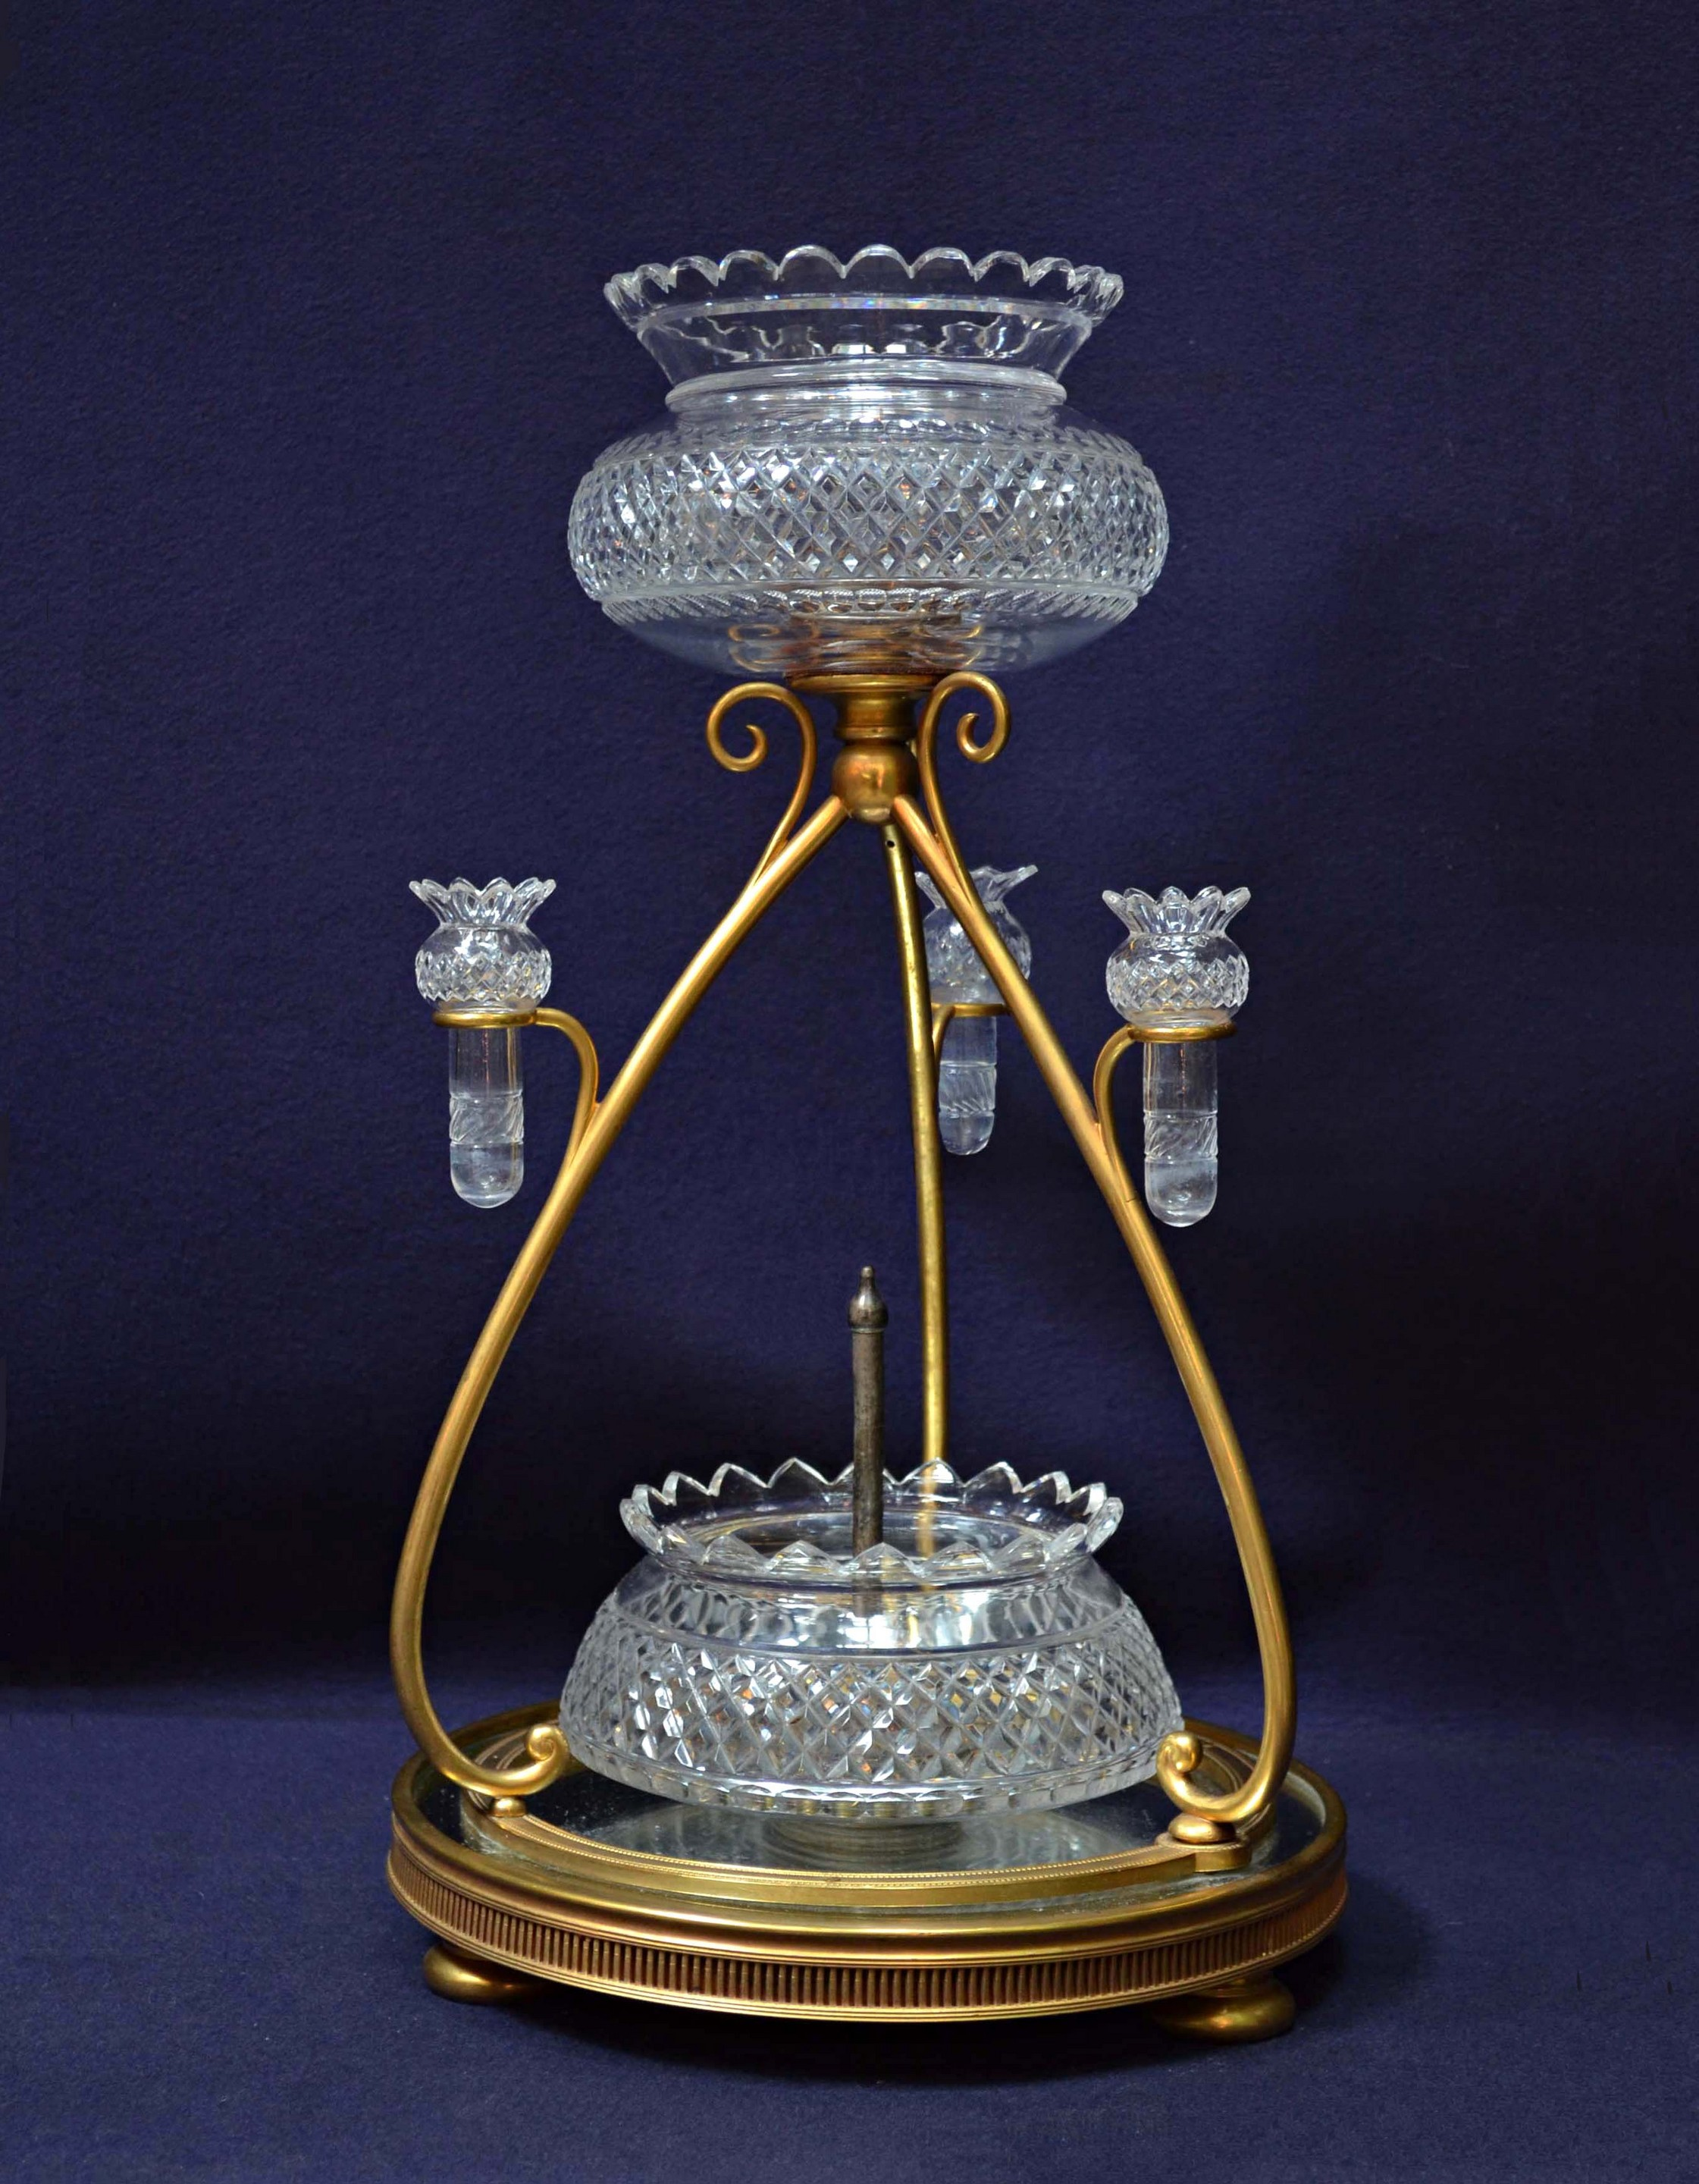 Extraordinary Antique Silver Epergne | Great Epergne